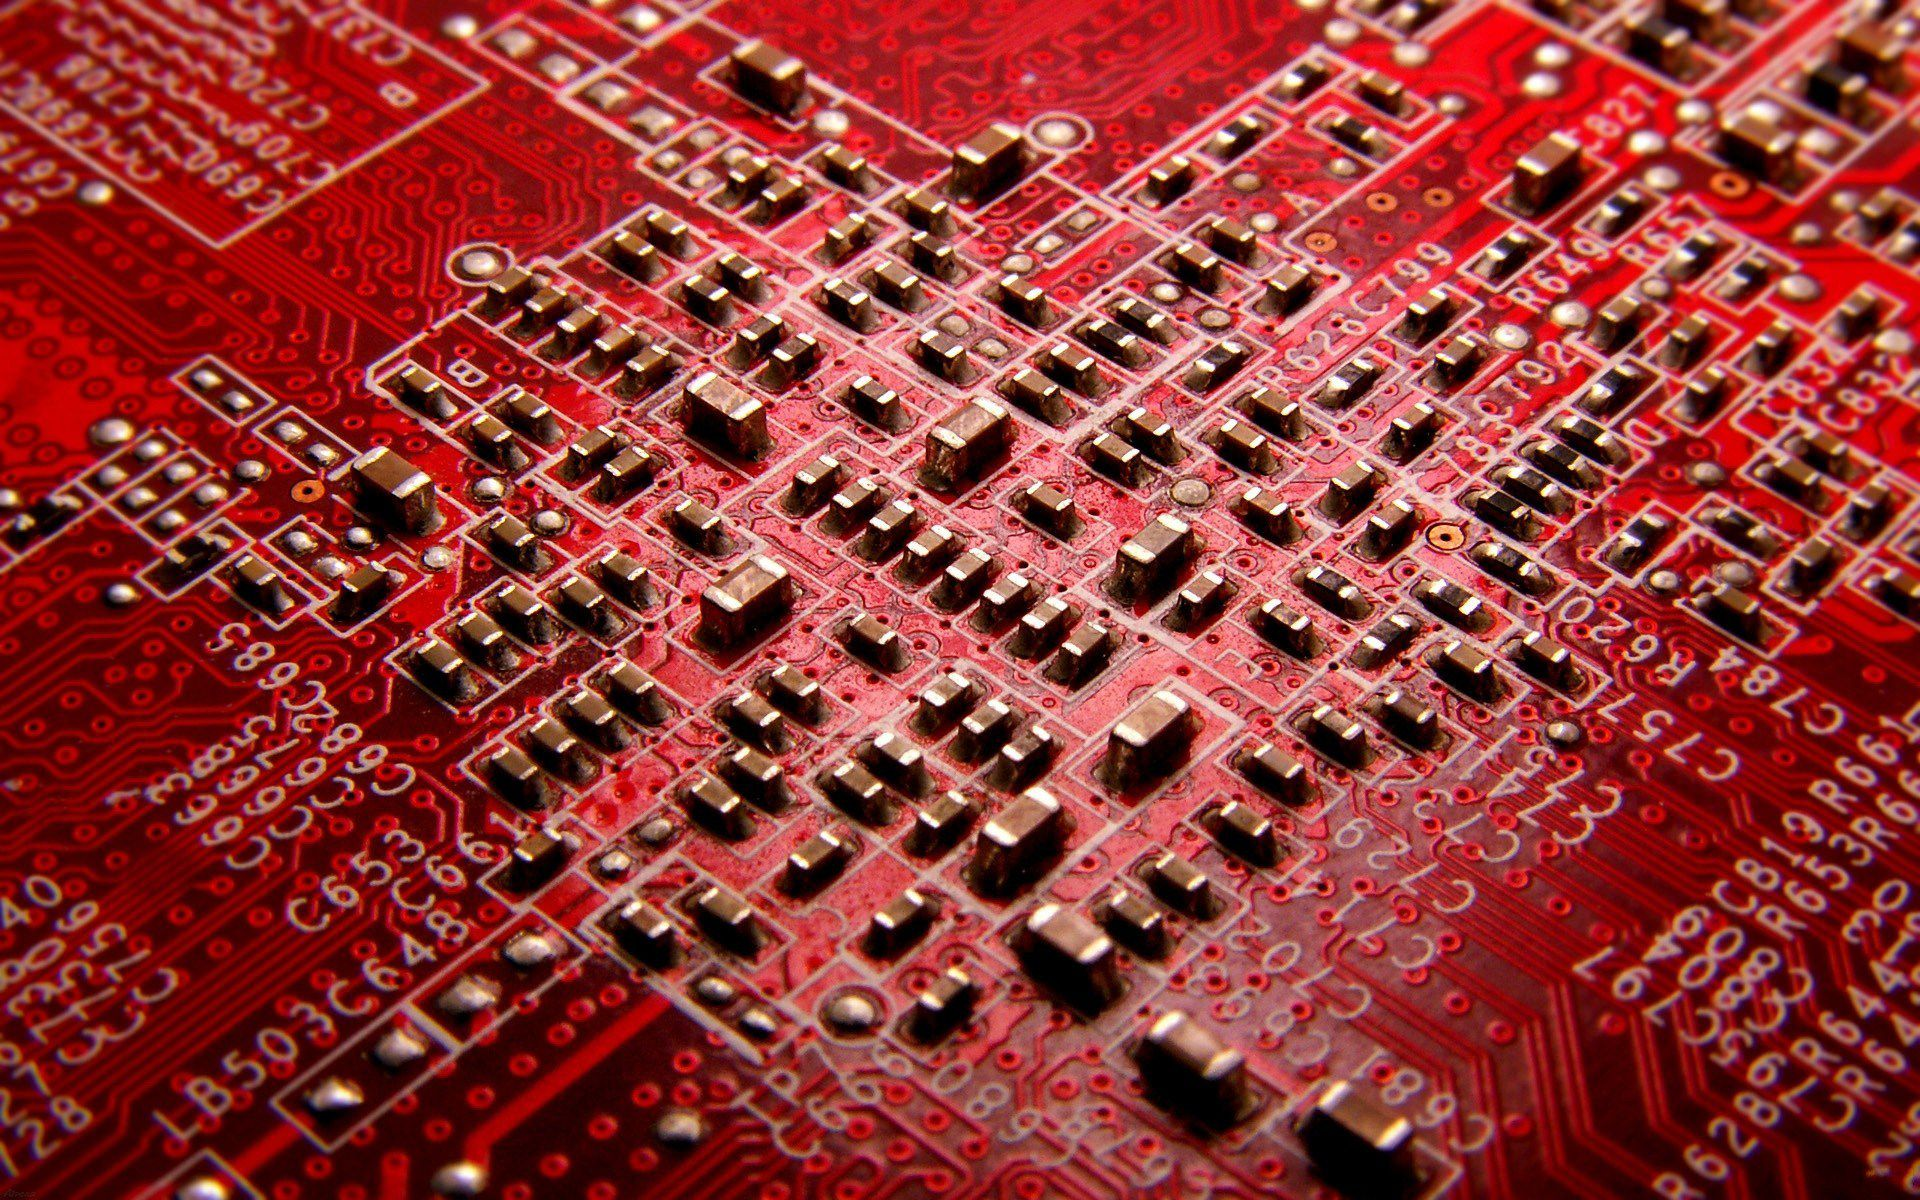 smd-ceramic-capacitors-technology-red-board-best-free-hd-wallpaper